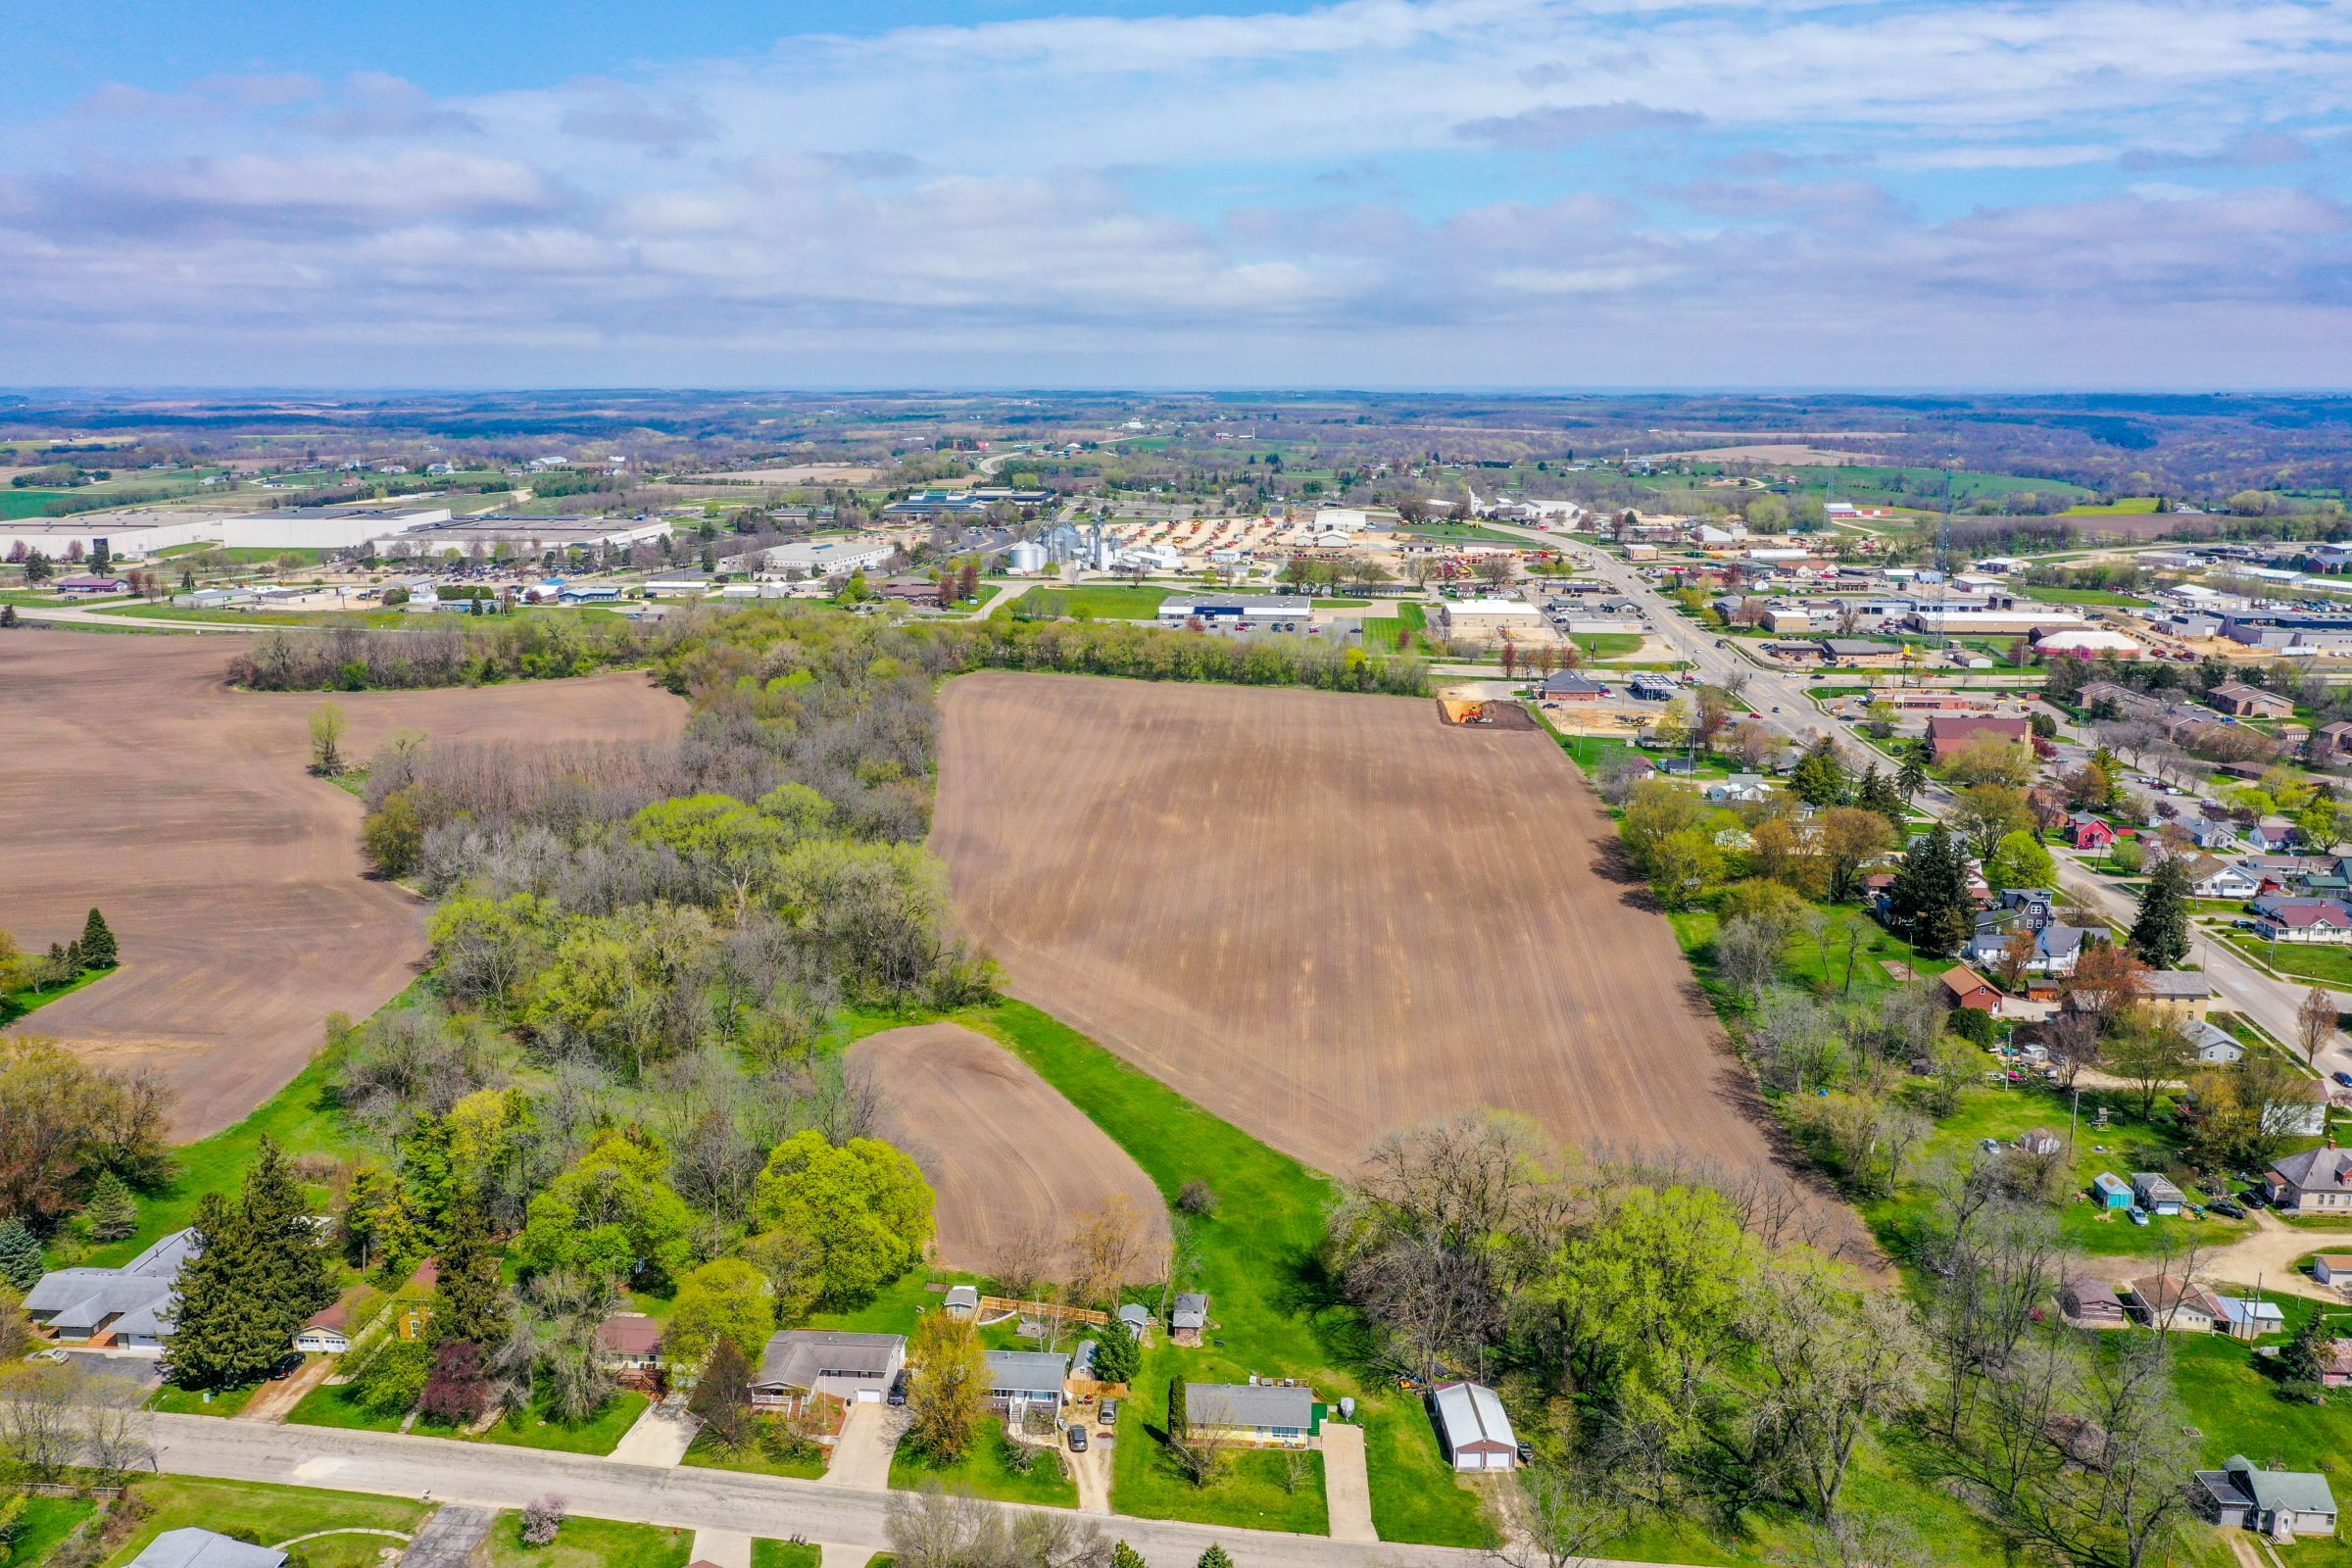 development-land-commercial-iowa-county-wisconsin-152-acres-listing-number-15474-1-2021-05-18-154943.jpg